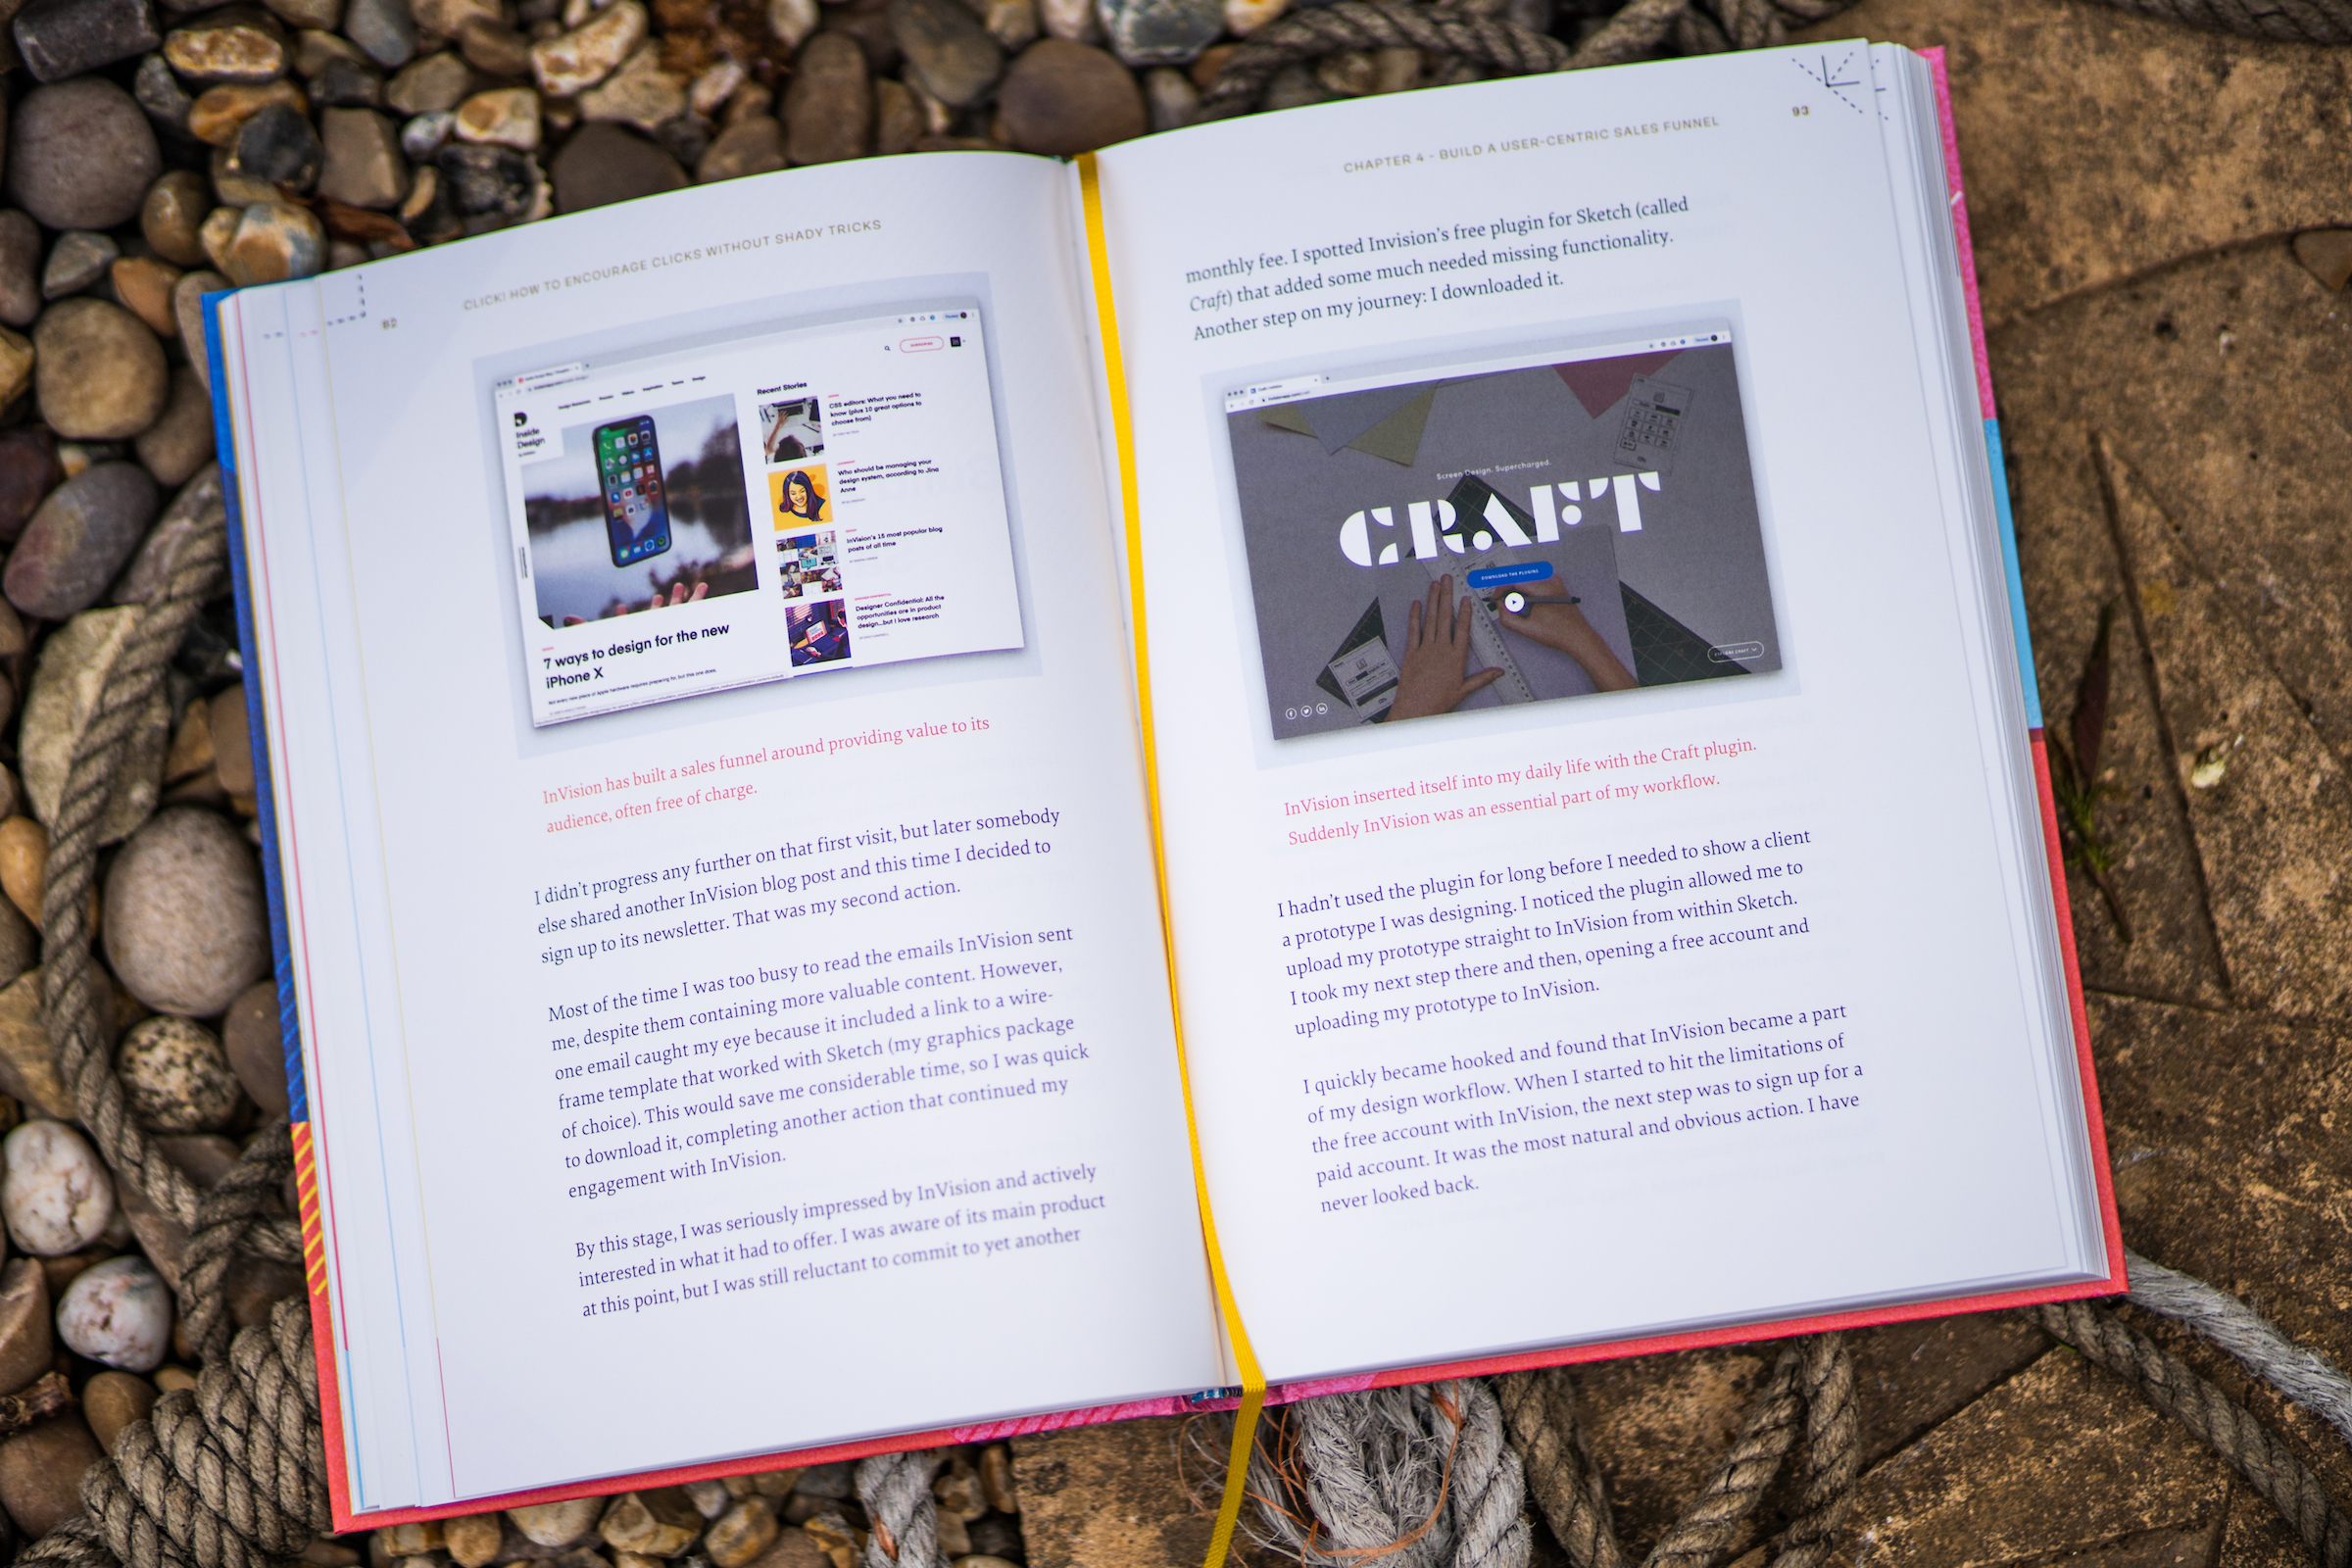 A Book Release For Click! And A Chance To Rethink Our Routines